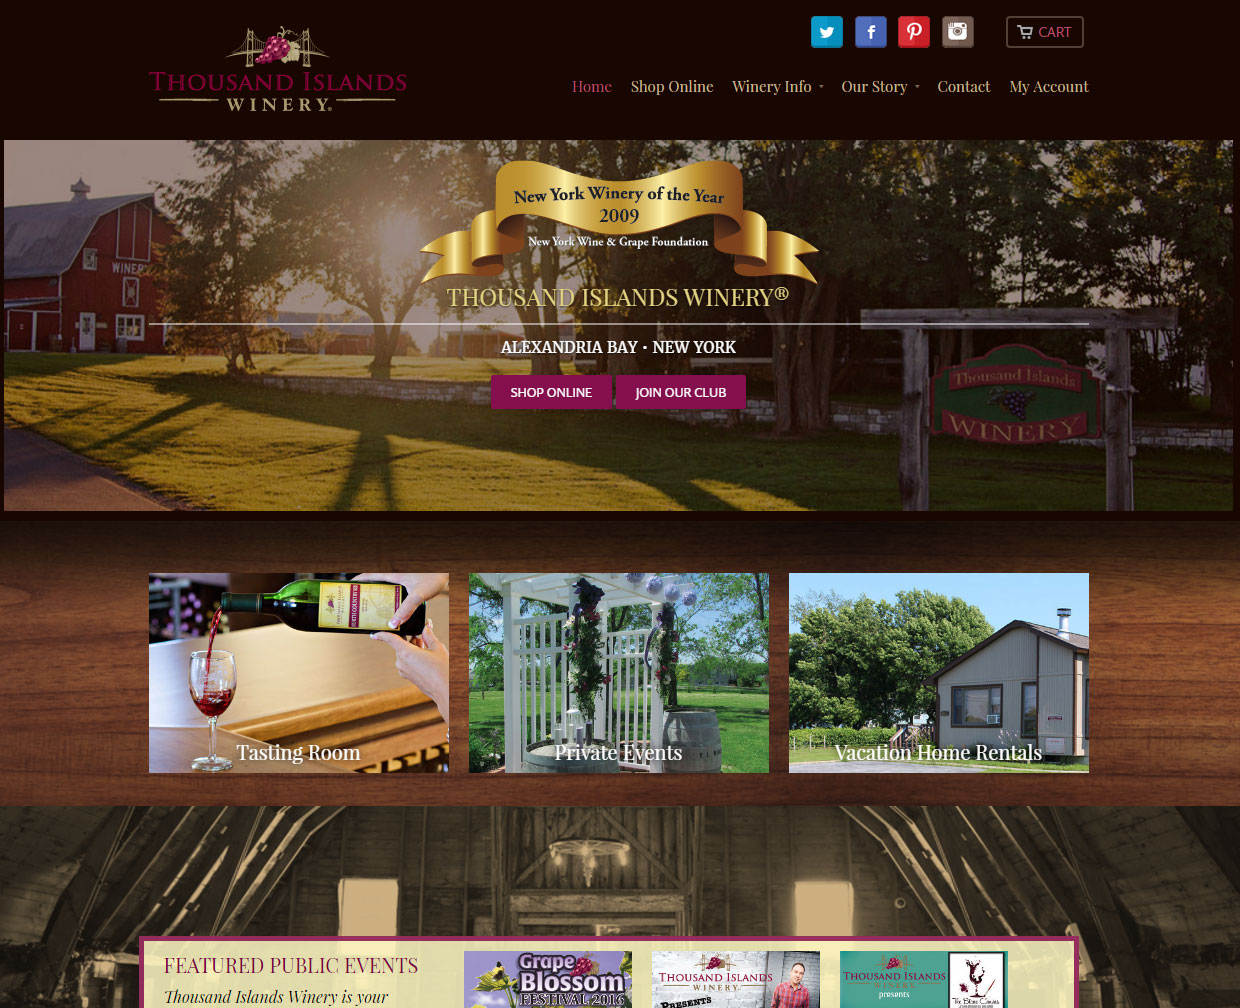 Thousand Islands Winery Home Page